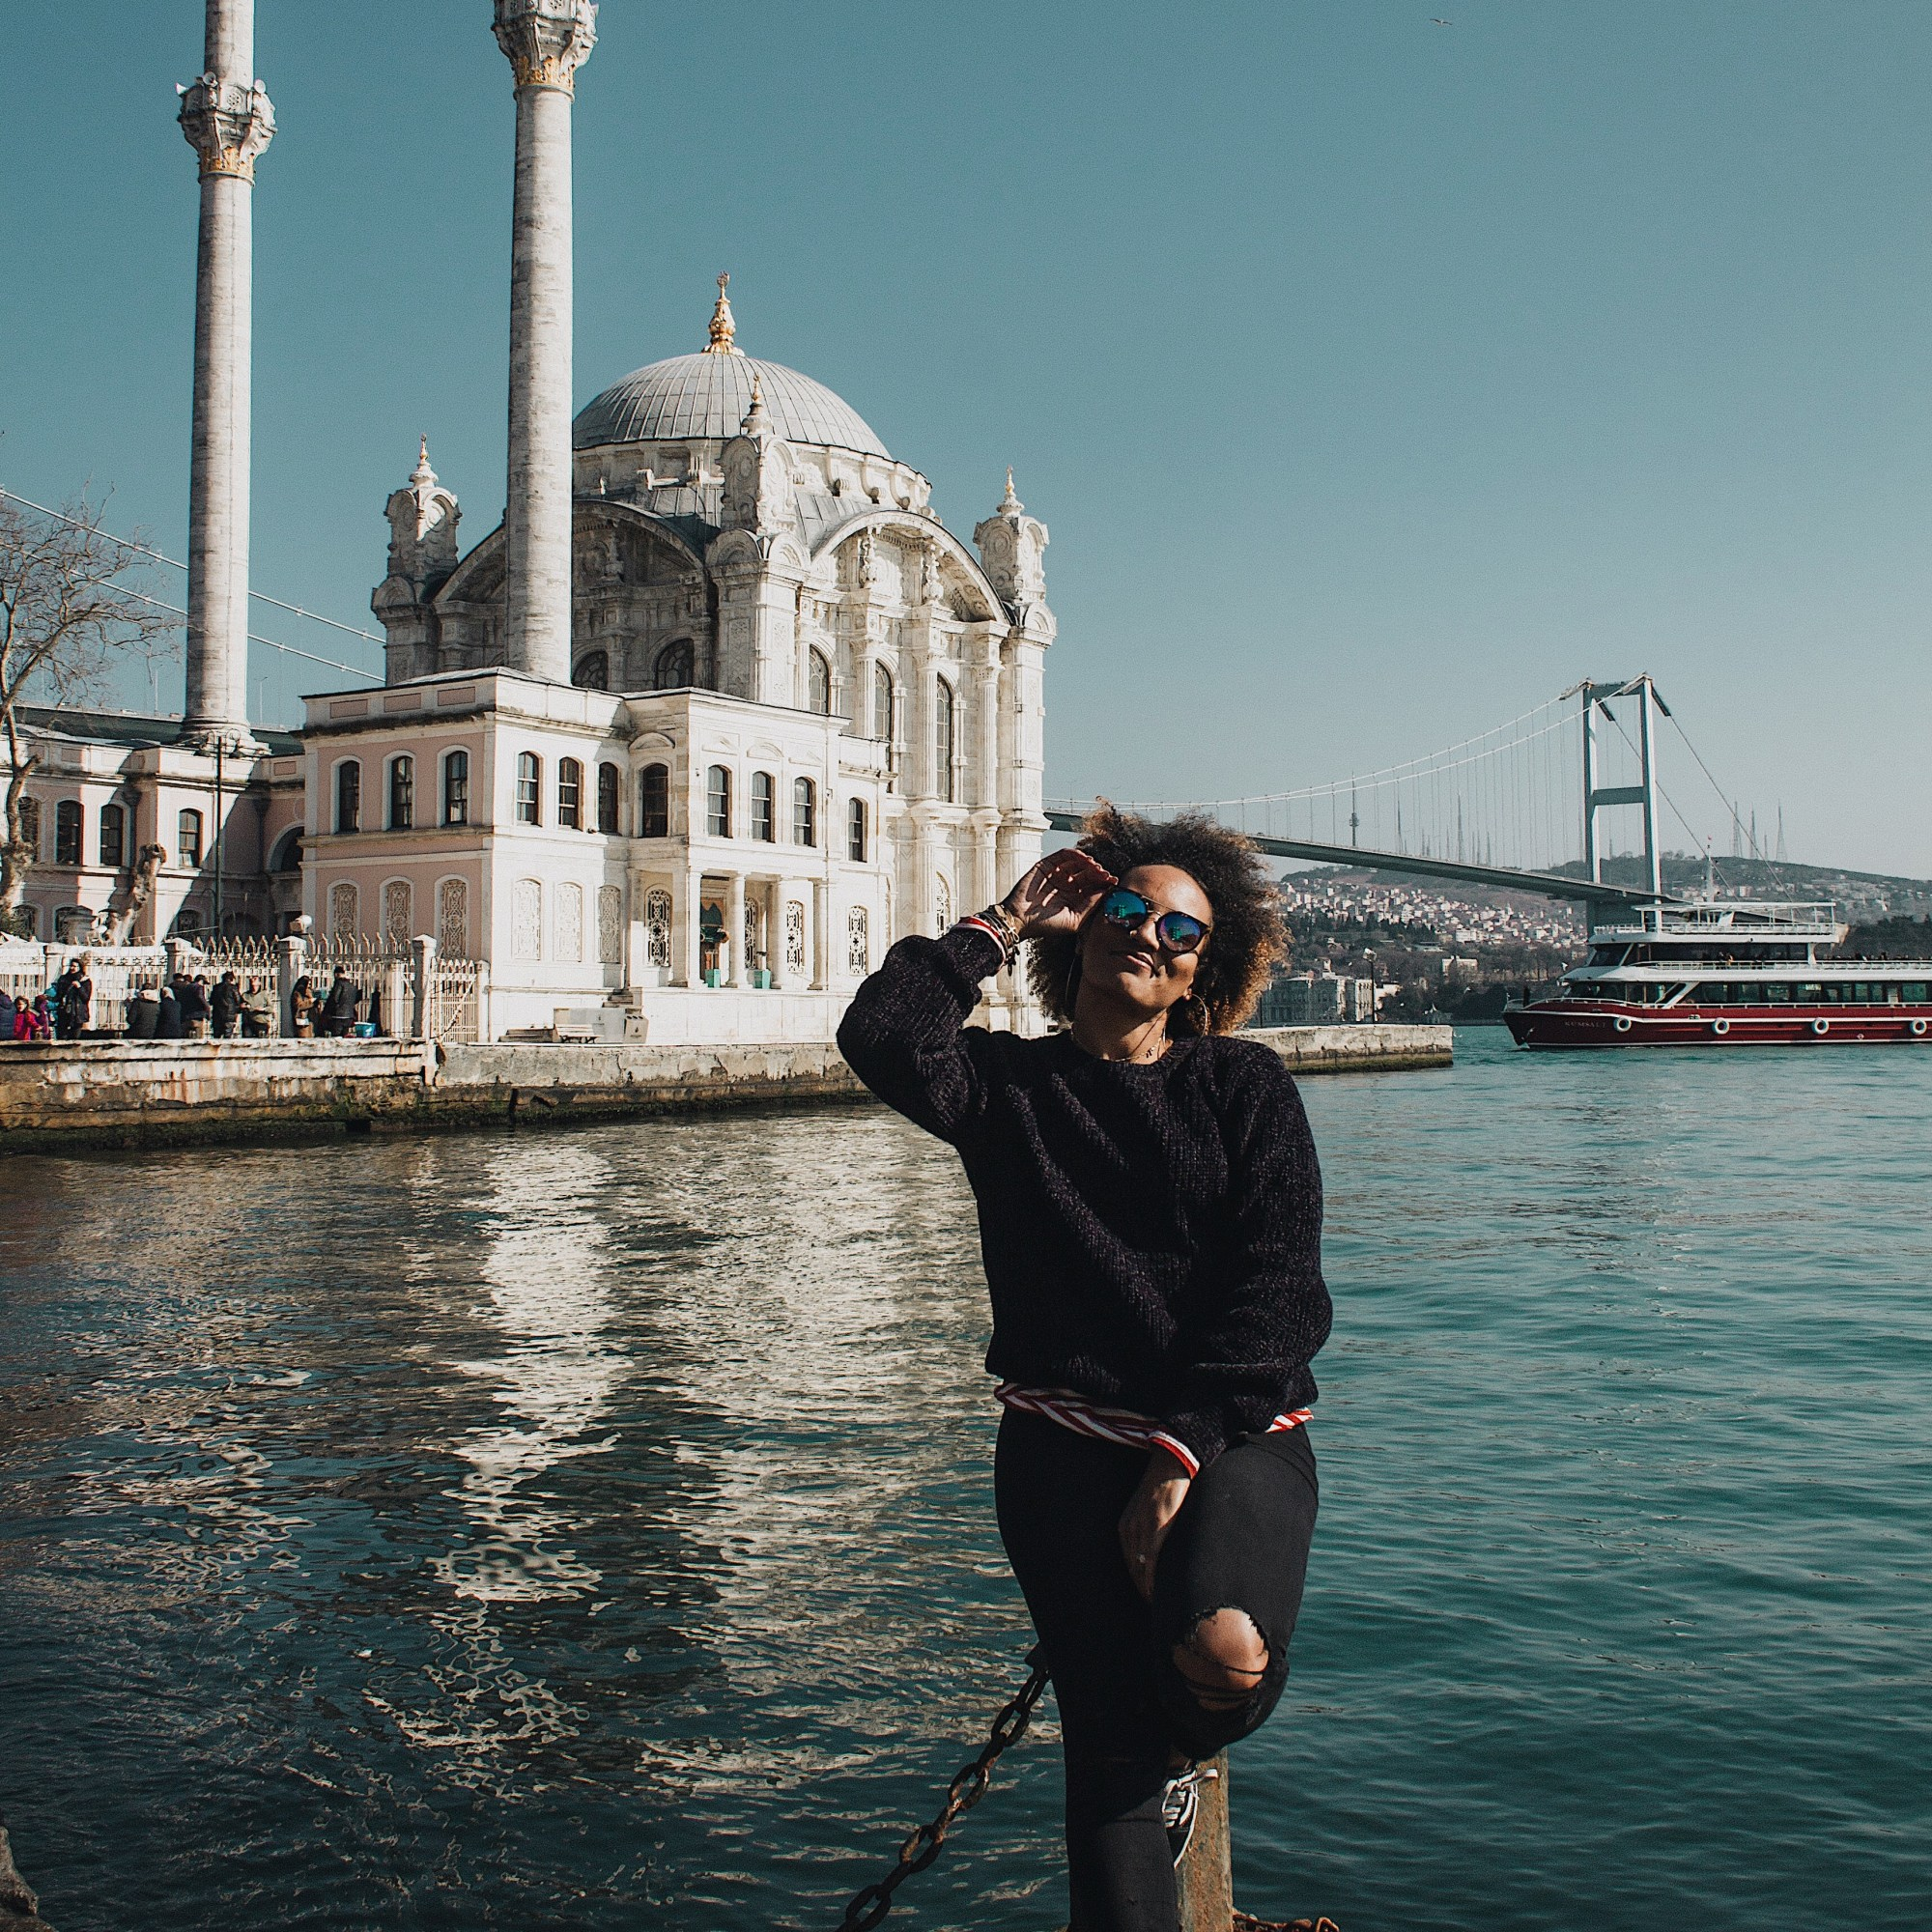 Illustrated by Sade - Photo of me taken in front of the Ortakoy Mosque on the Bosphorus Channel